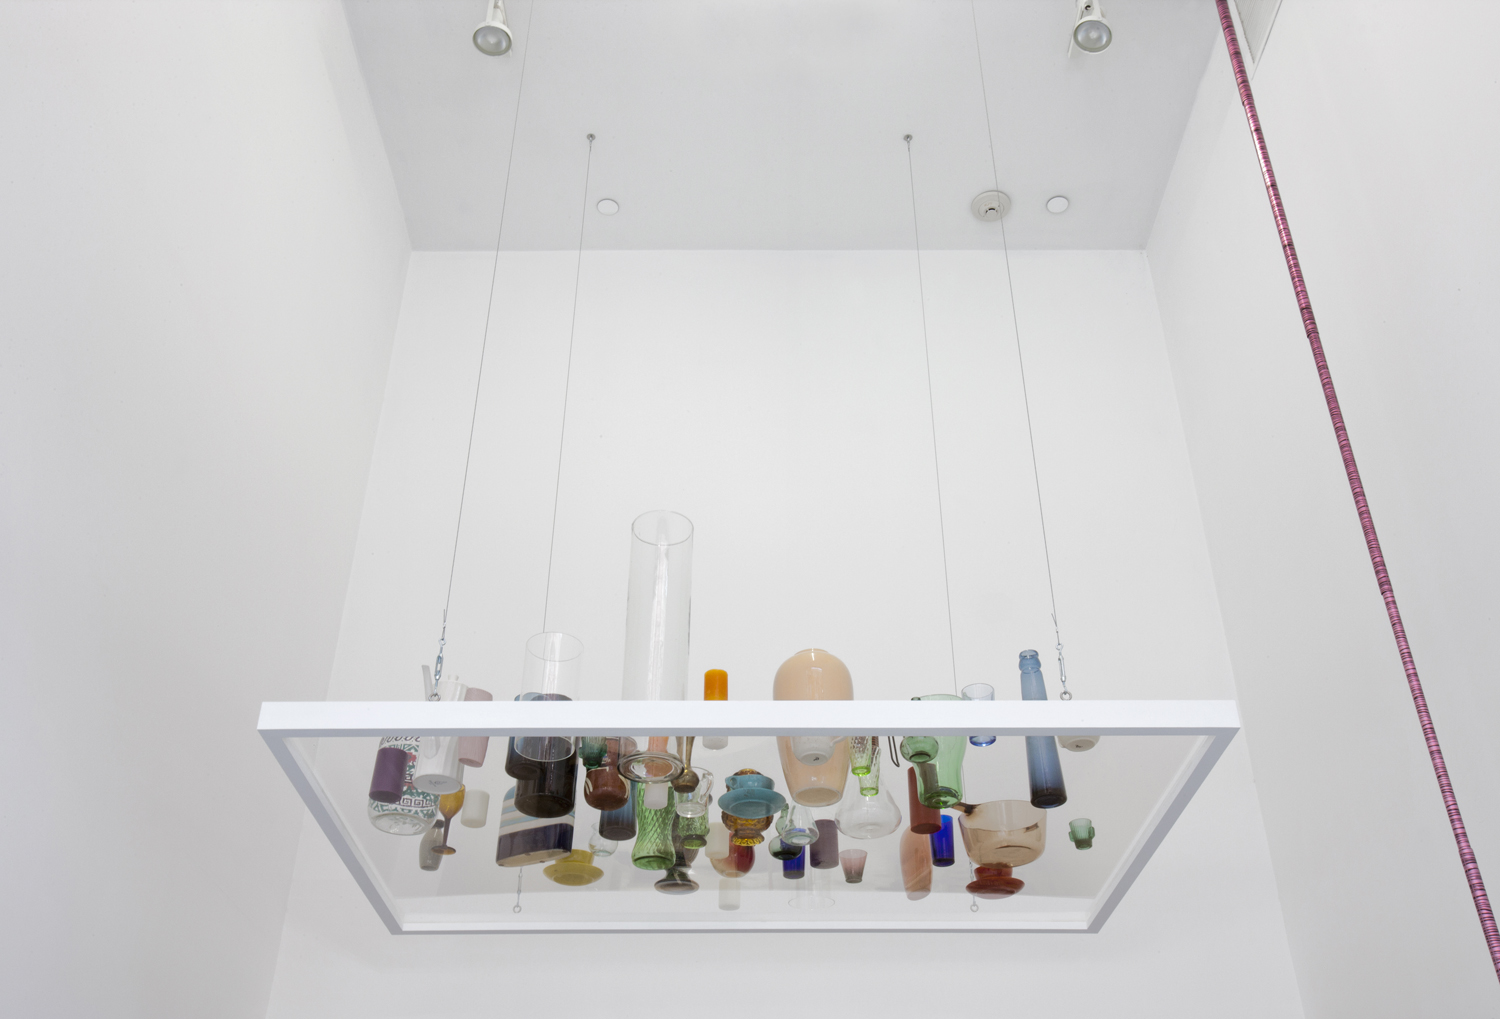 SEAN KENNEDY UNTITLED NY 2012 VESSEL PIECE INSTALLATION VIEW